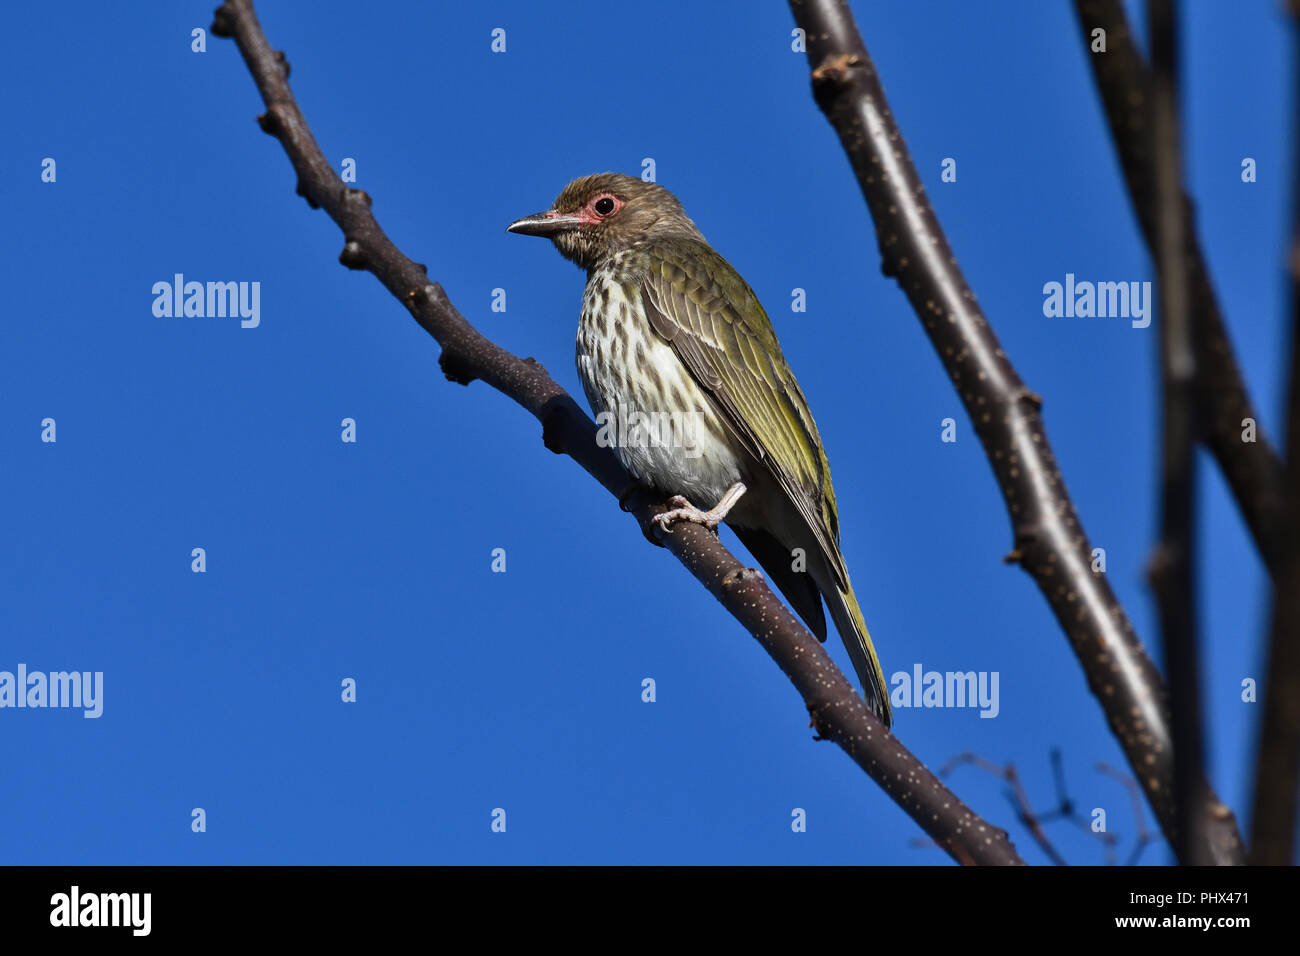 An Australian, Queensland Female Figbird ( Sphecotheres viridis ) perched on a tree branch resting Stock Photo